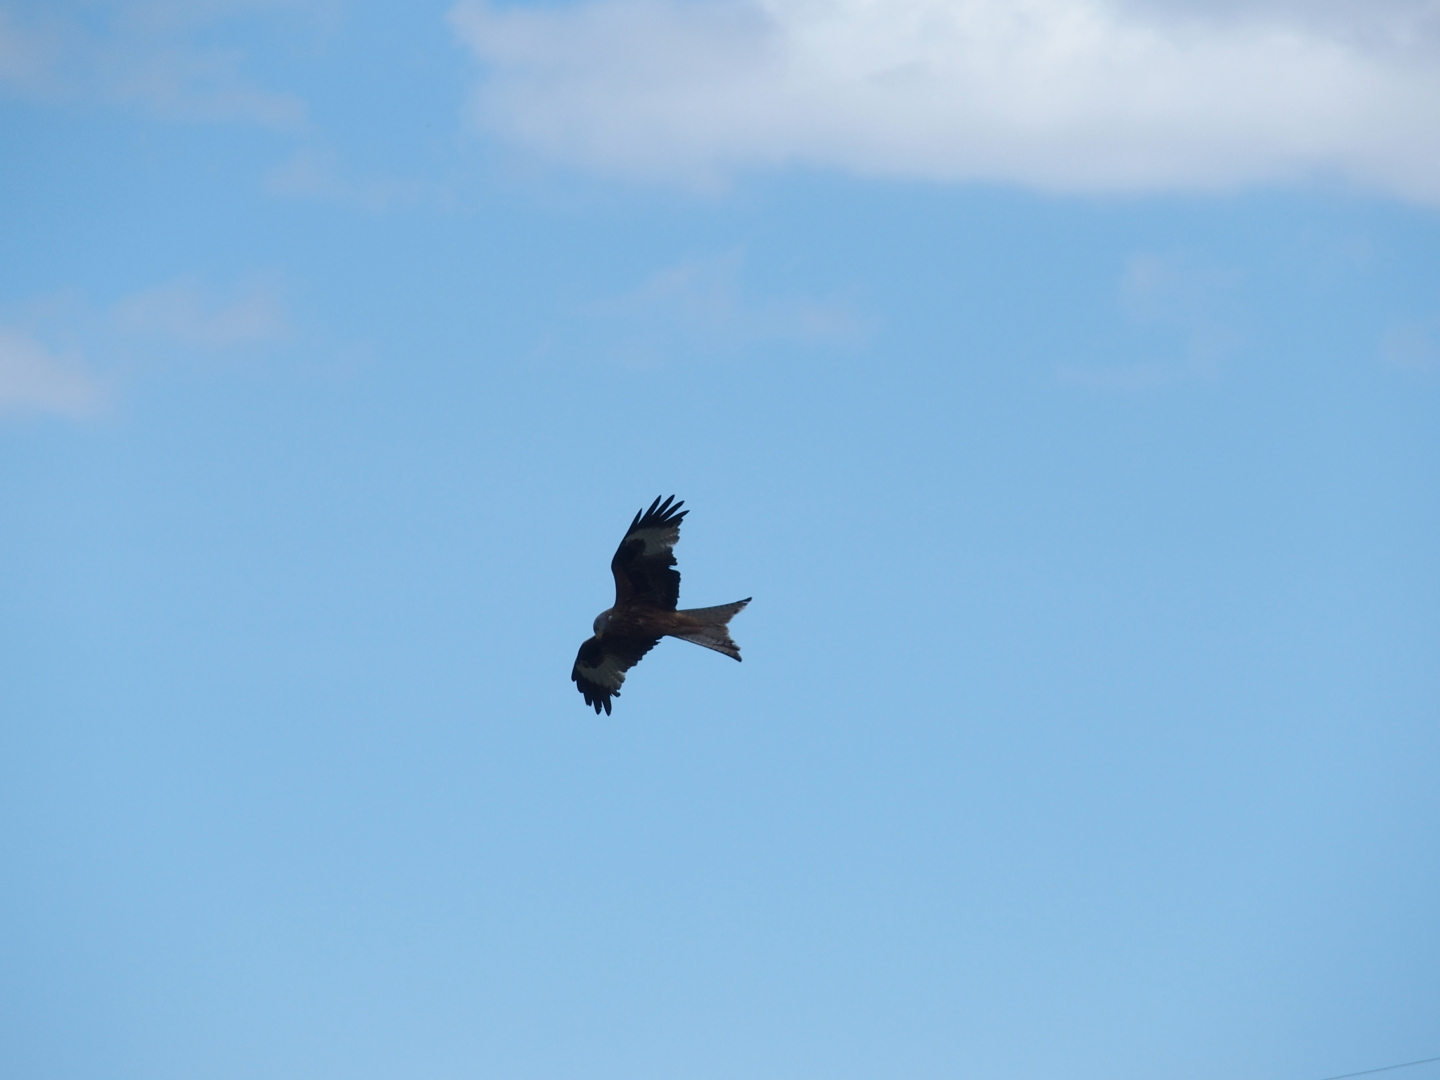 A red kite searching for food.